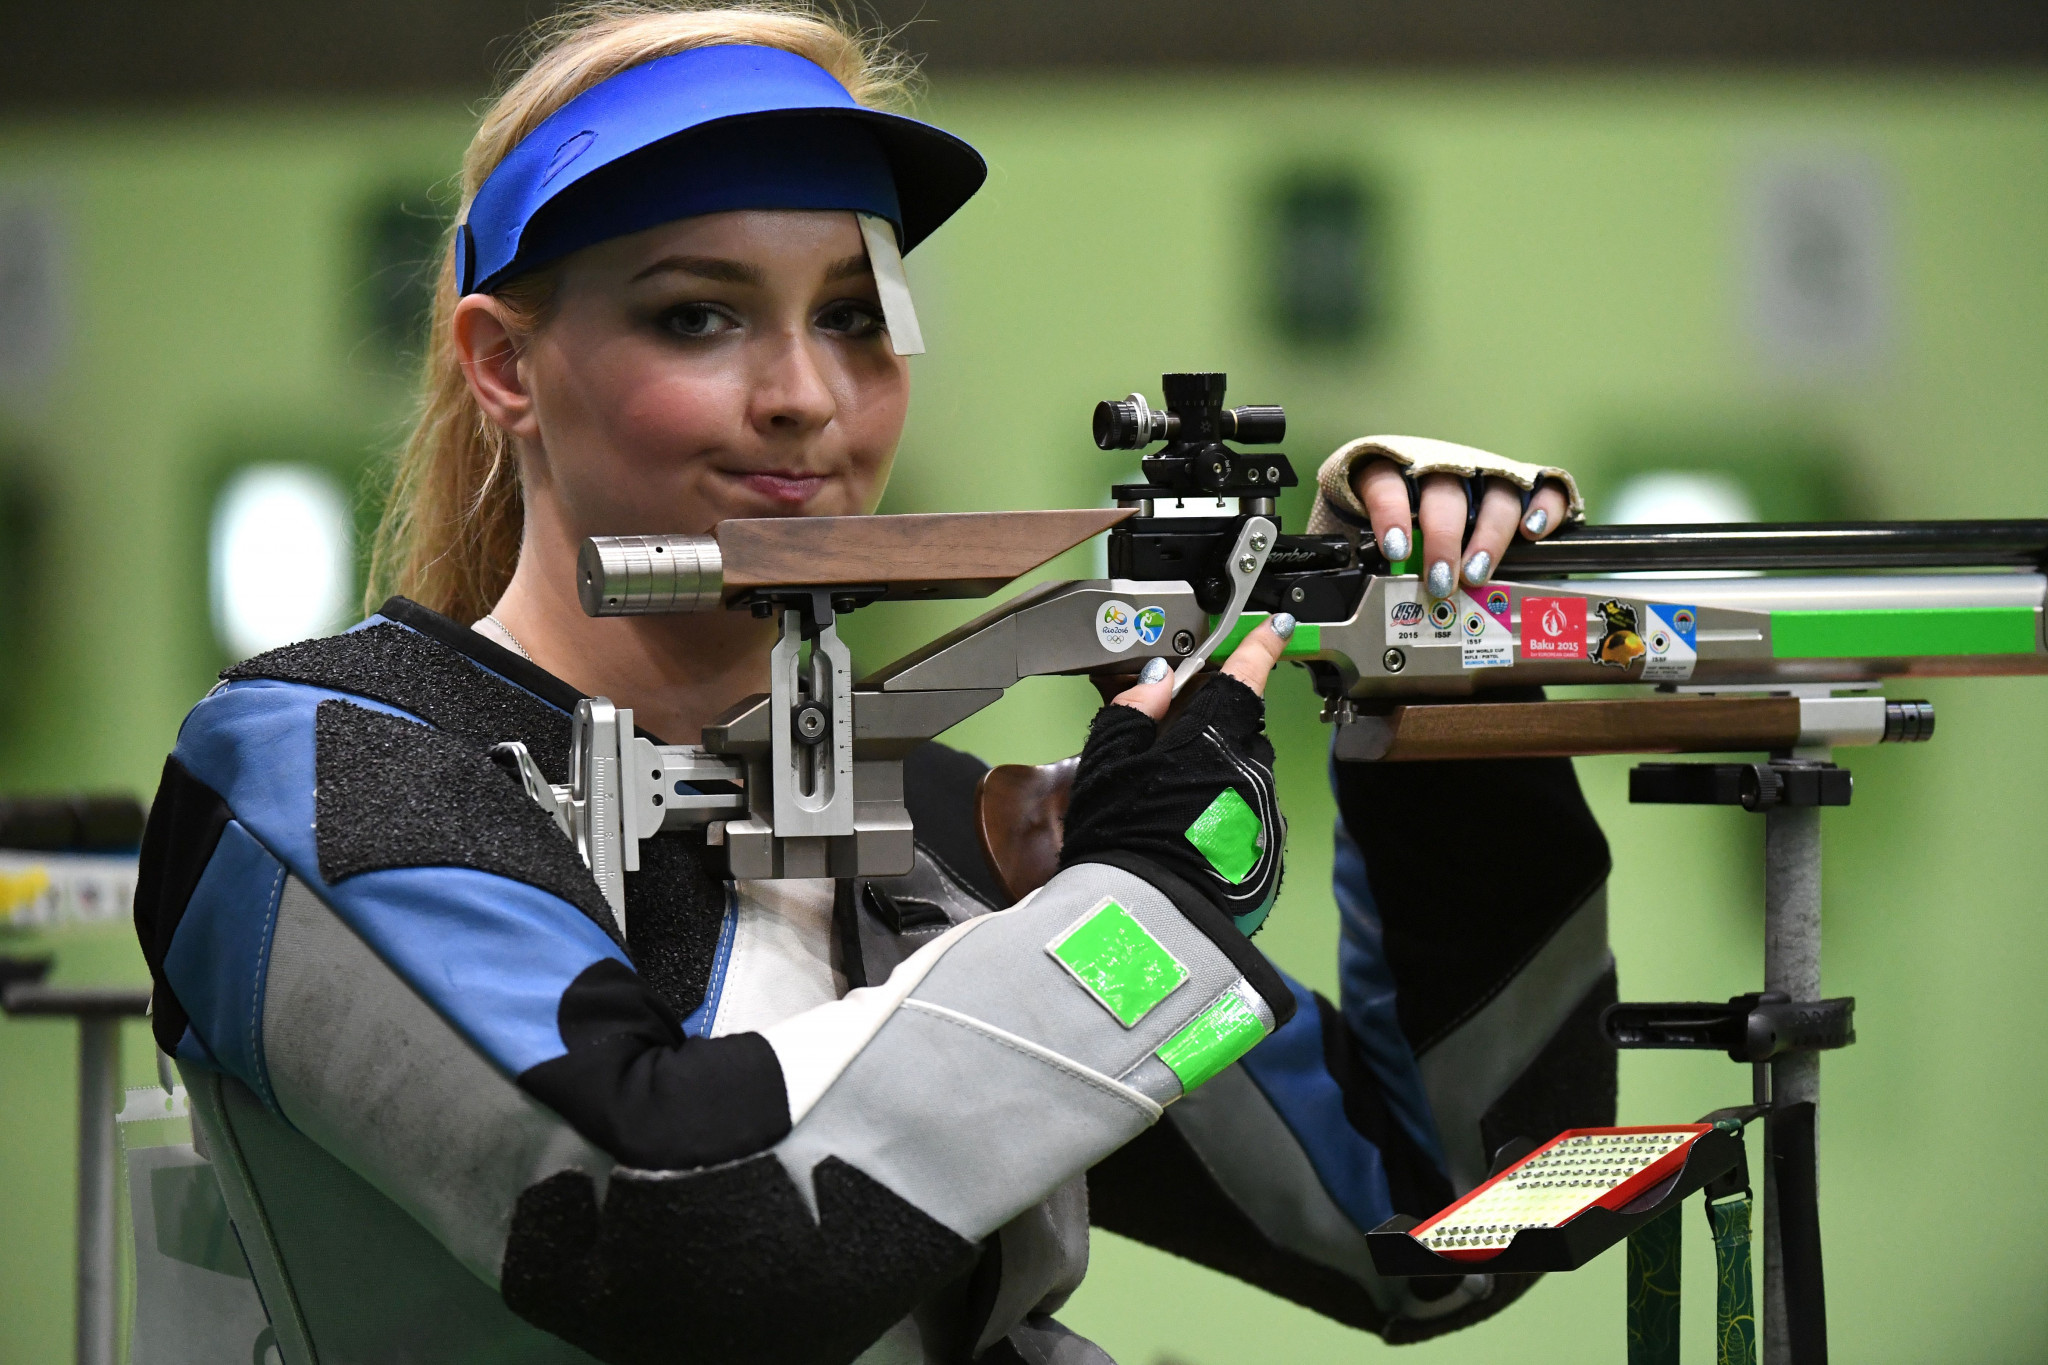 McIntosh beats younger sister to claim gold at Oceania and Commonwealth Shooting Federations' Championships